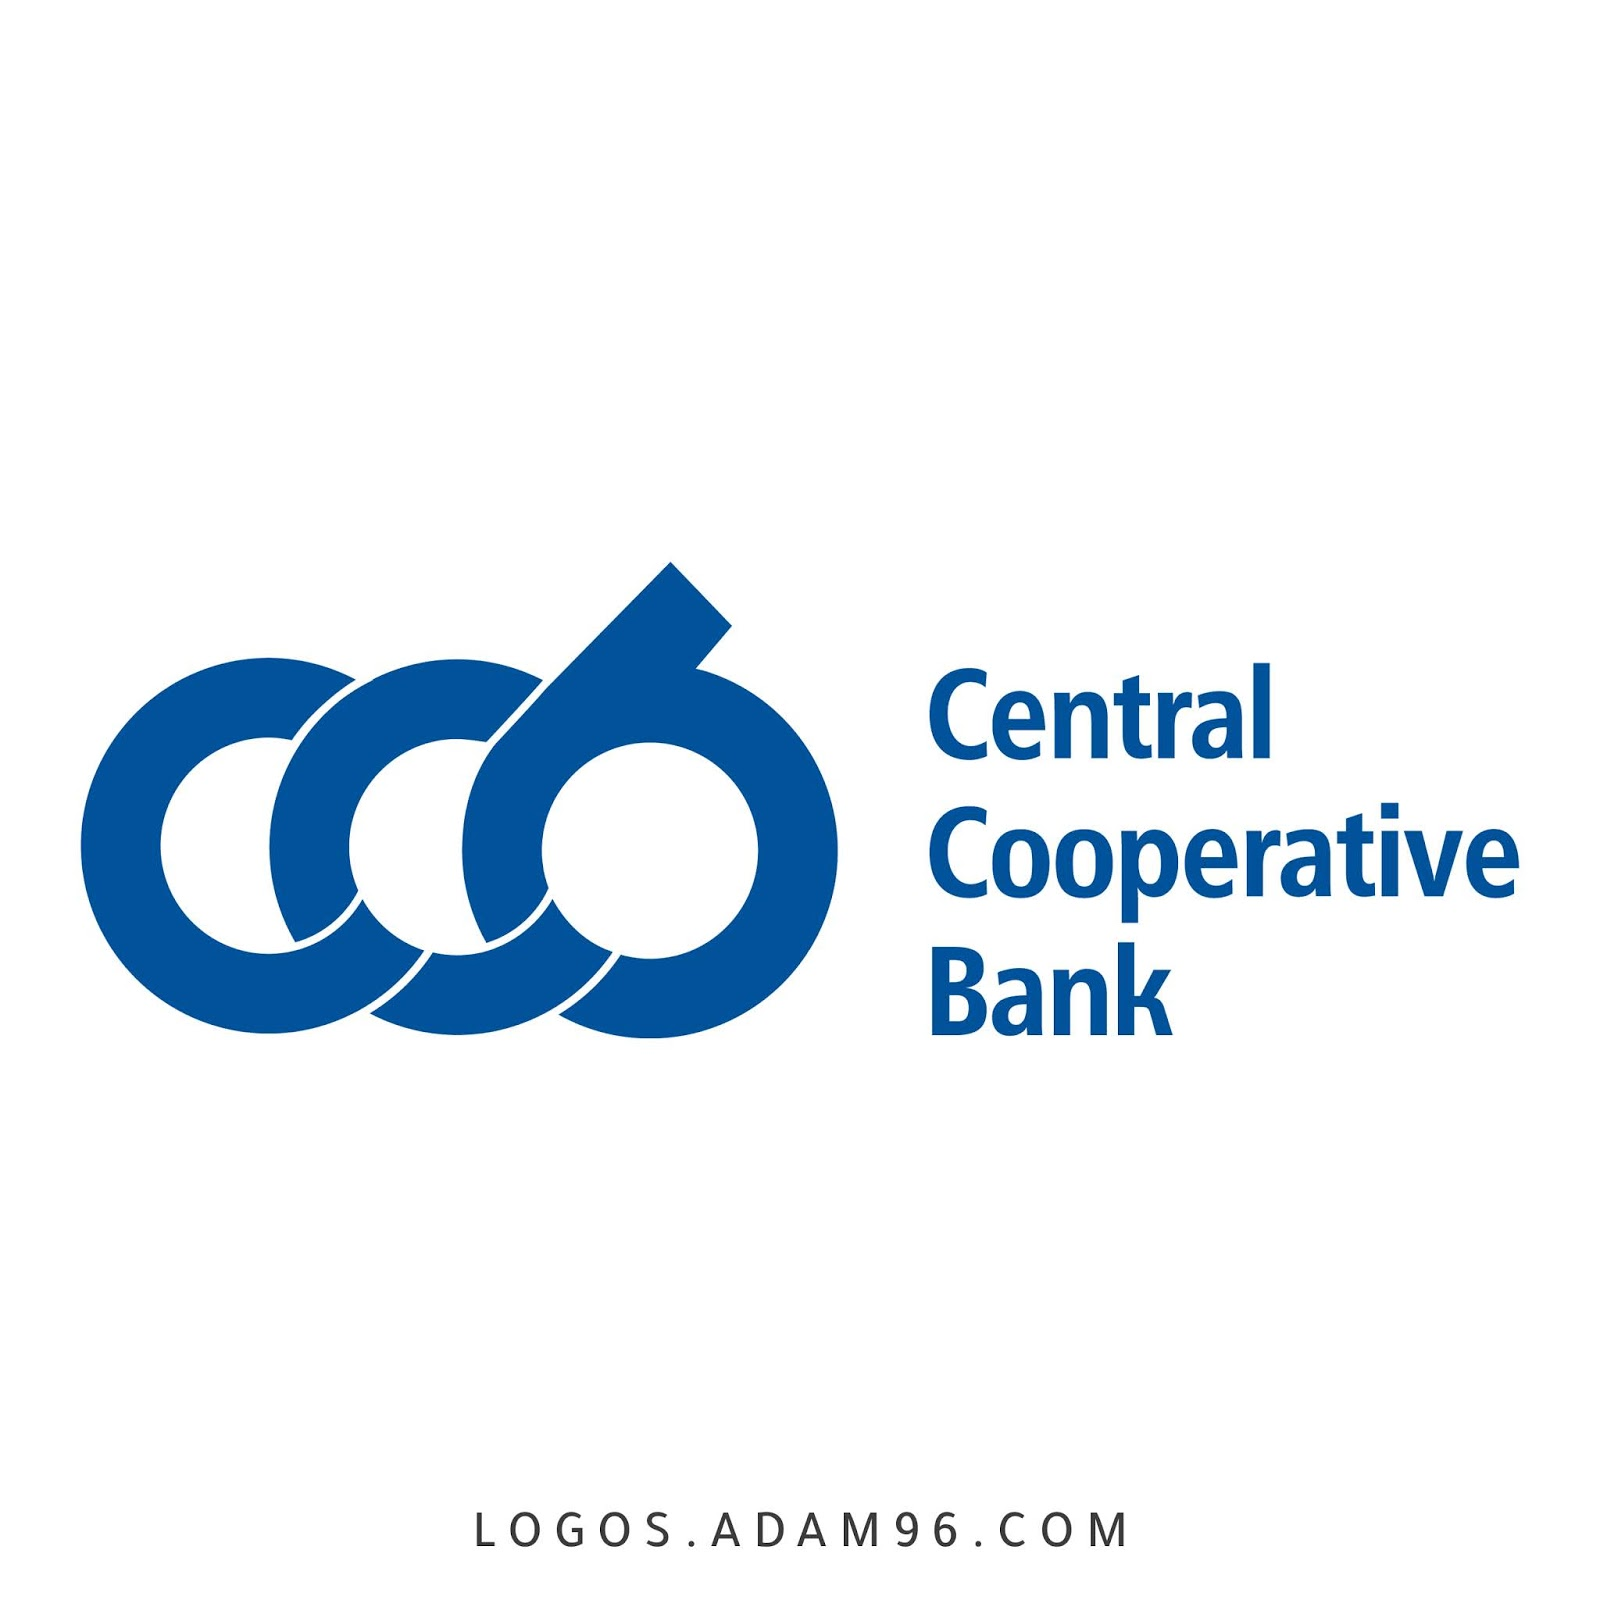 Central Cooperative Bank